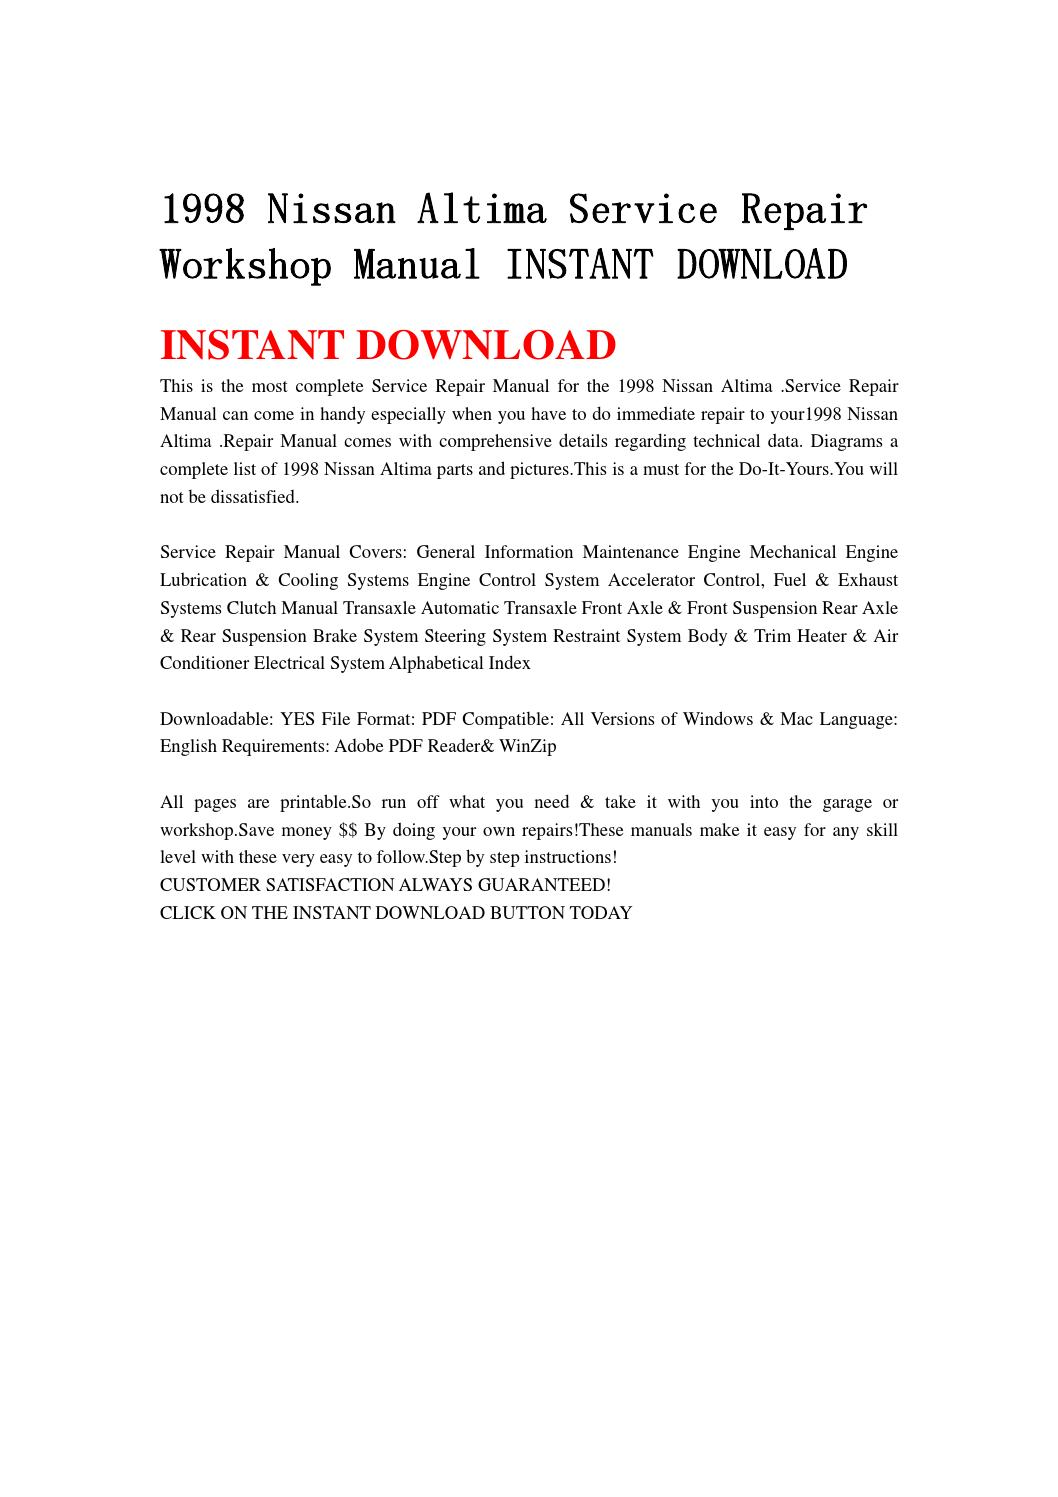 1998 nissan altima service repair workshop manual instant download by  jsefgsebh - issuu